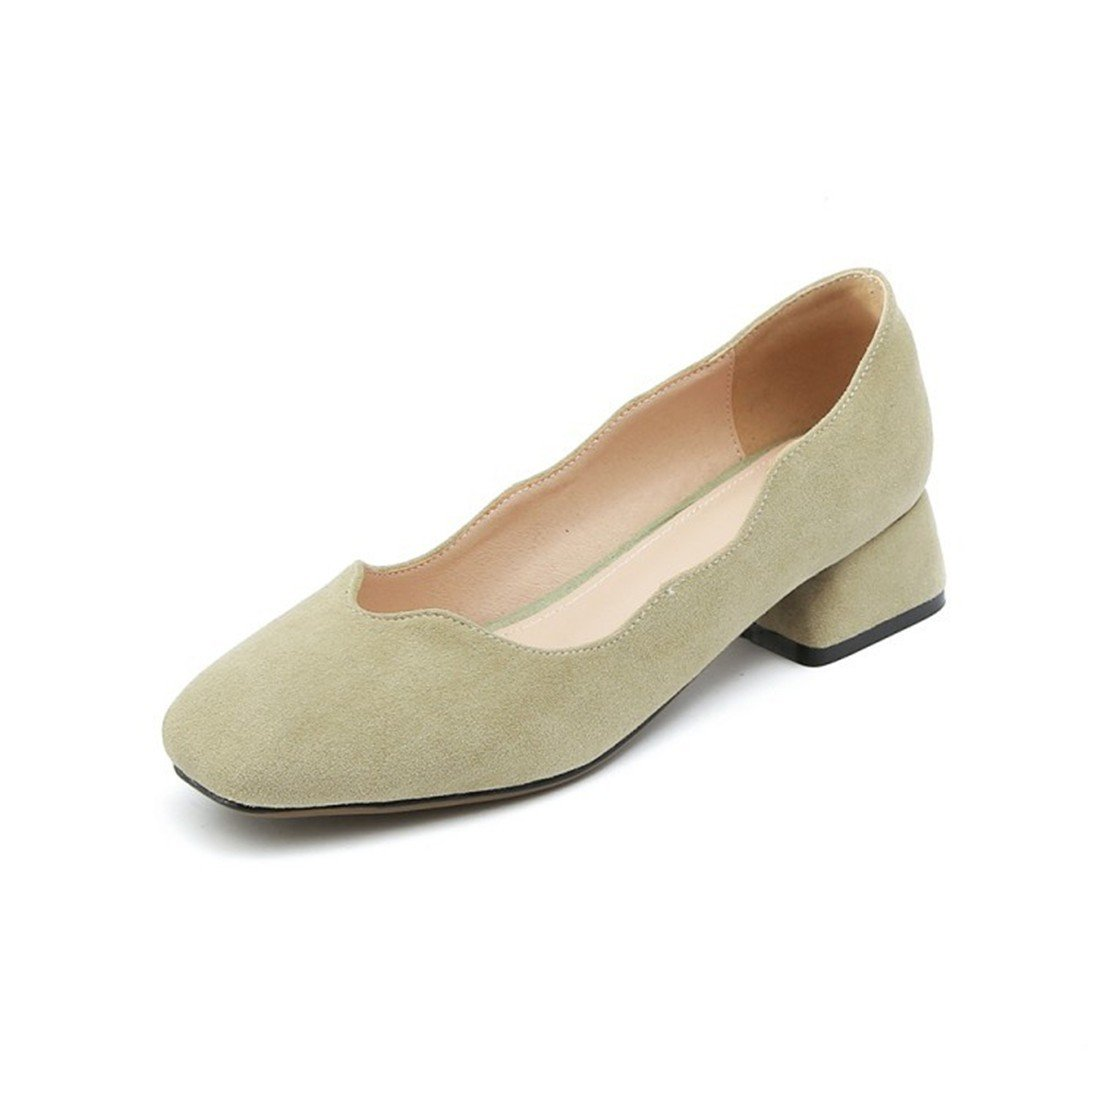 RFF-Frühlings-, Sommer- und Pumps Herbstschuhe Damen Pumps und Geschlossene Ballerinas Riemchenpumps The Spring and Summer Fashion with Low schuhe Party schuhe with Large Numbers of Ms. d36cad